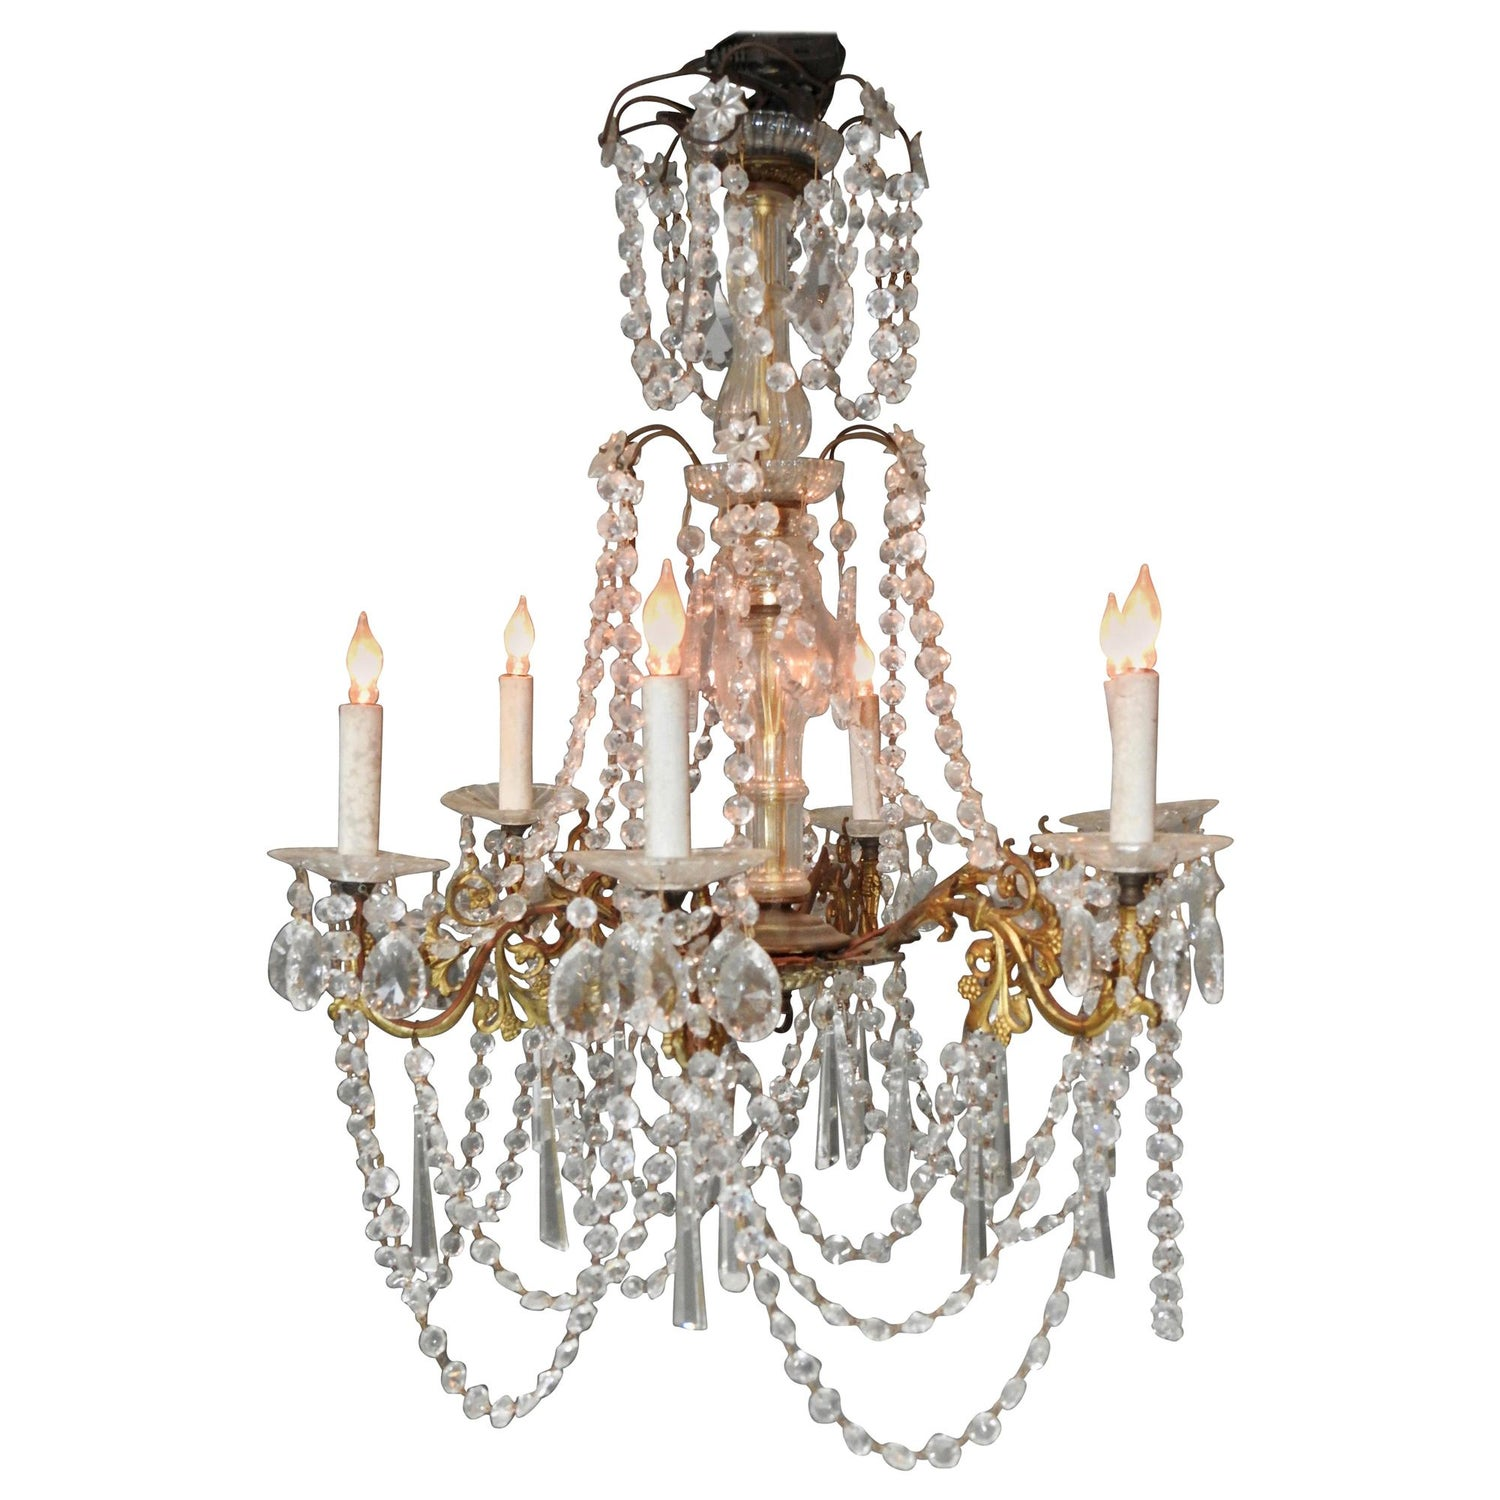 French Country Chandeliers You'll Love in 2020 | Wayfair